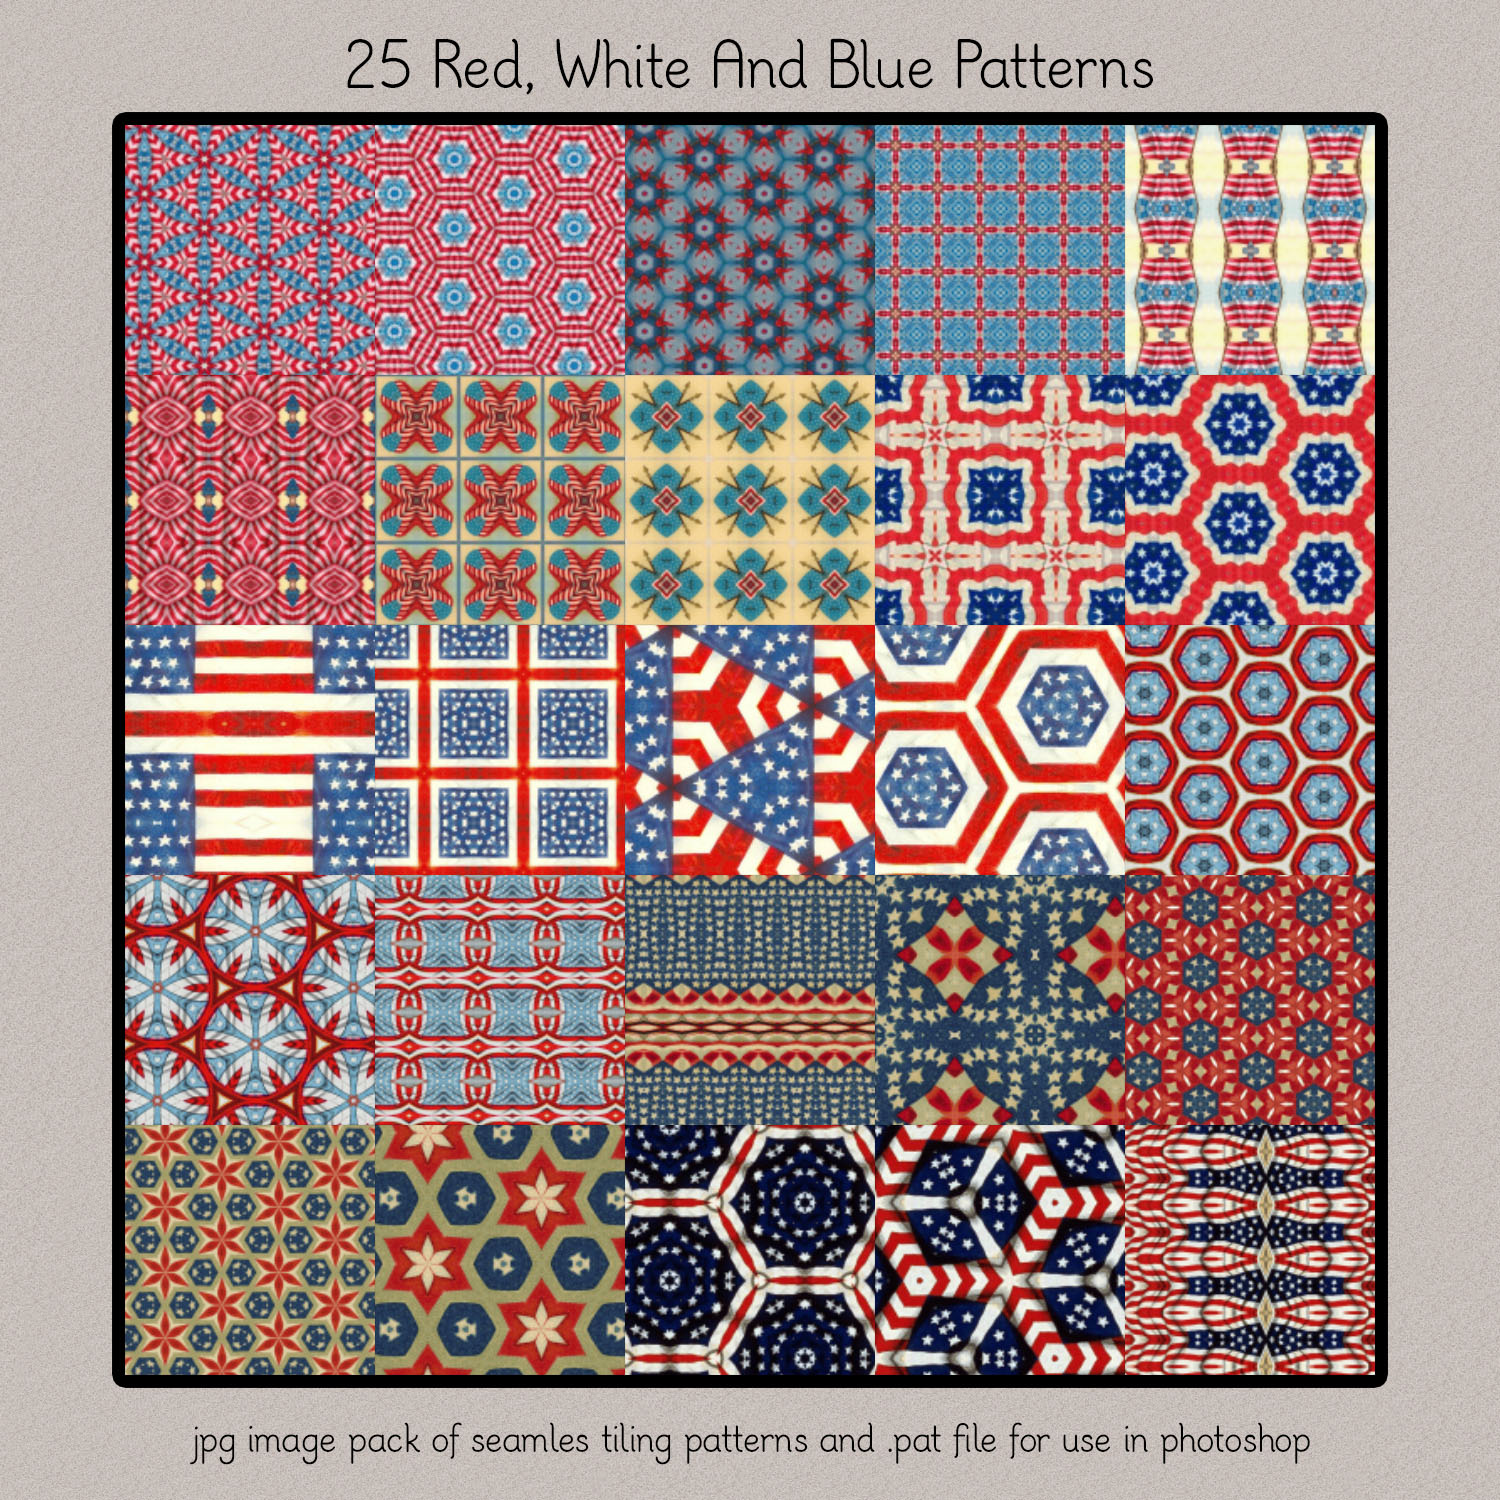 Red White And Blue Patterns